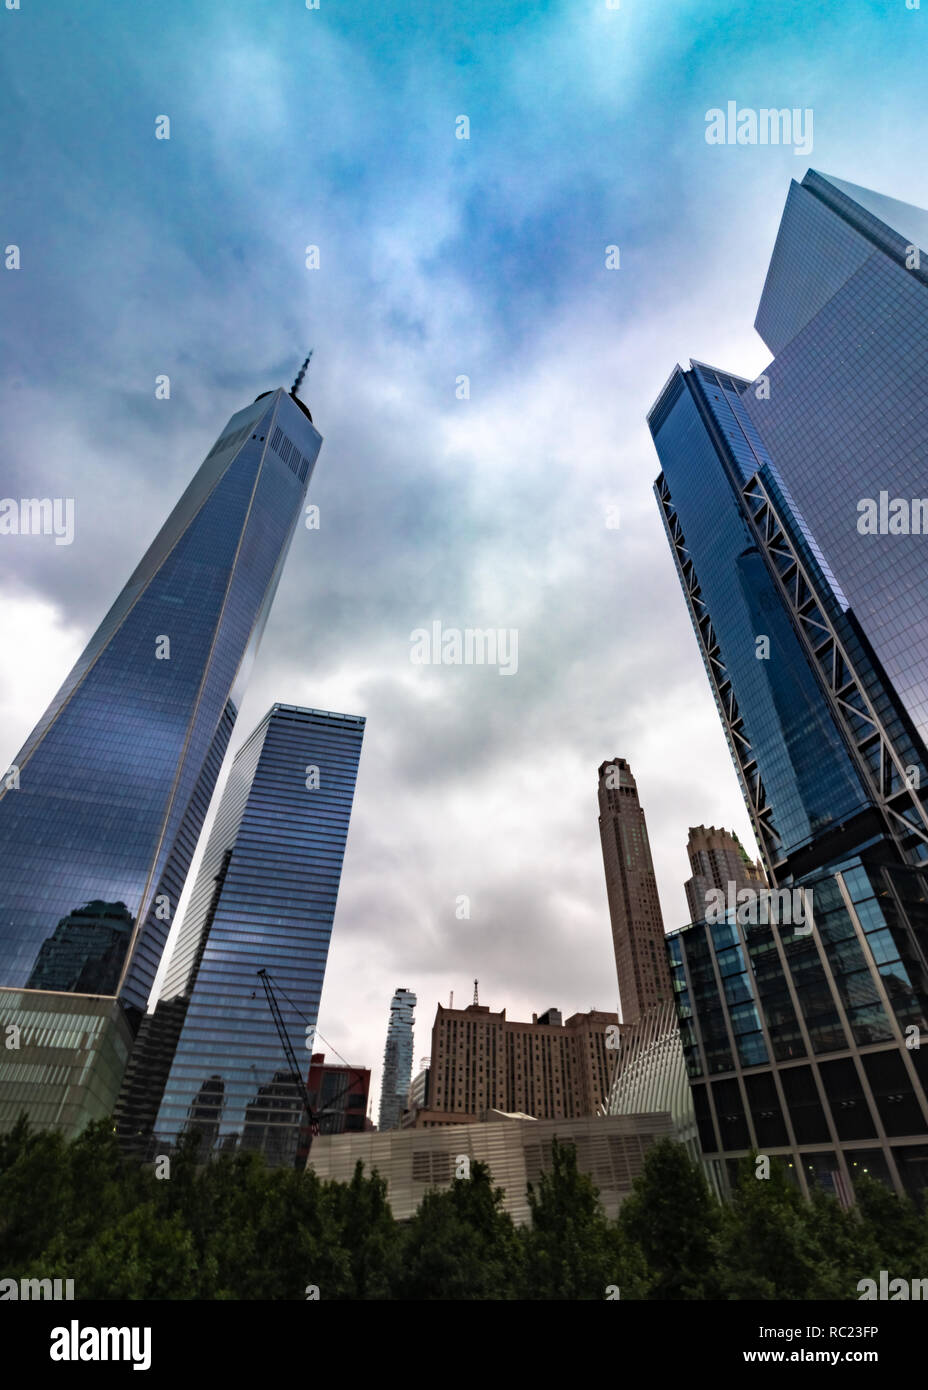 World Trade Center NYC - Stock Image